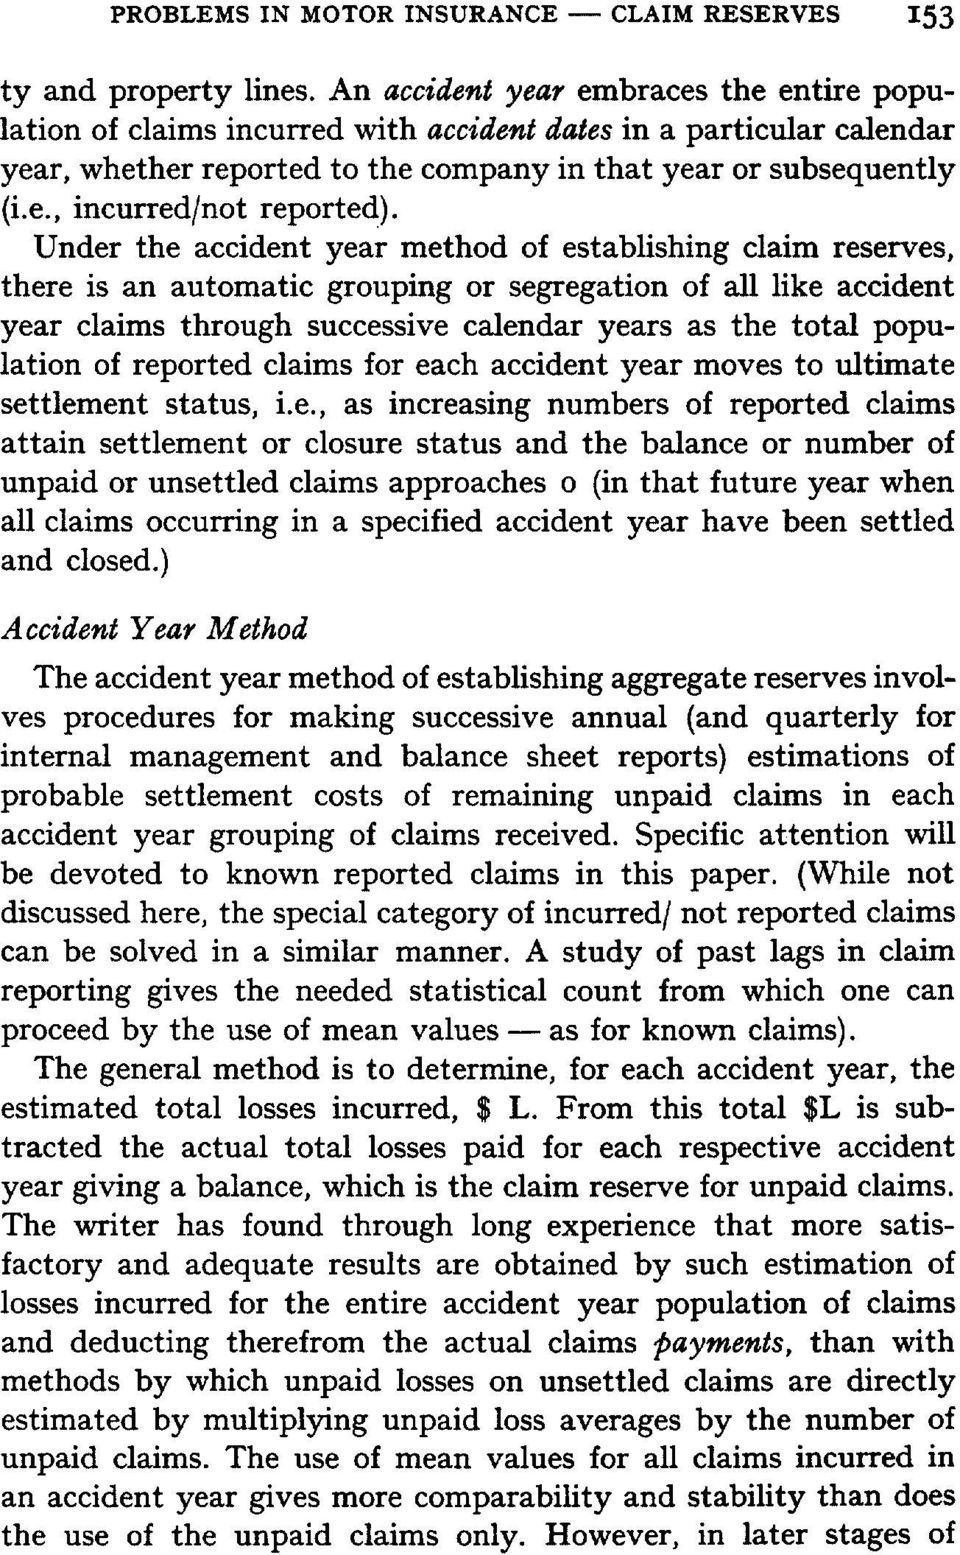 Under the accident year method of establishing claim reserves, there is an automatic grouping or segregation of all like accident year claims through successive calendar years as the total population